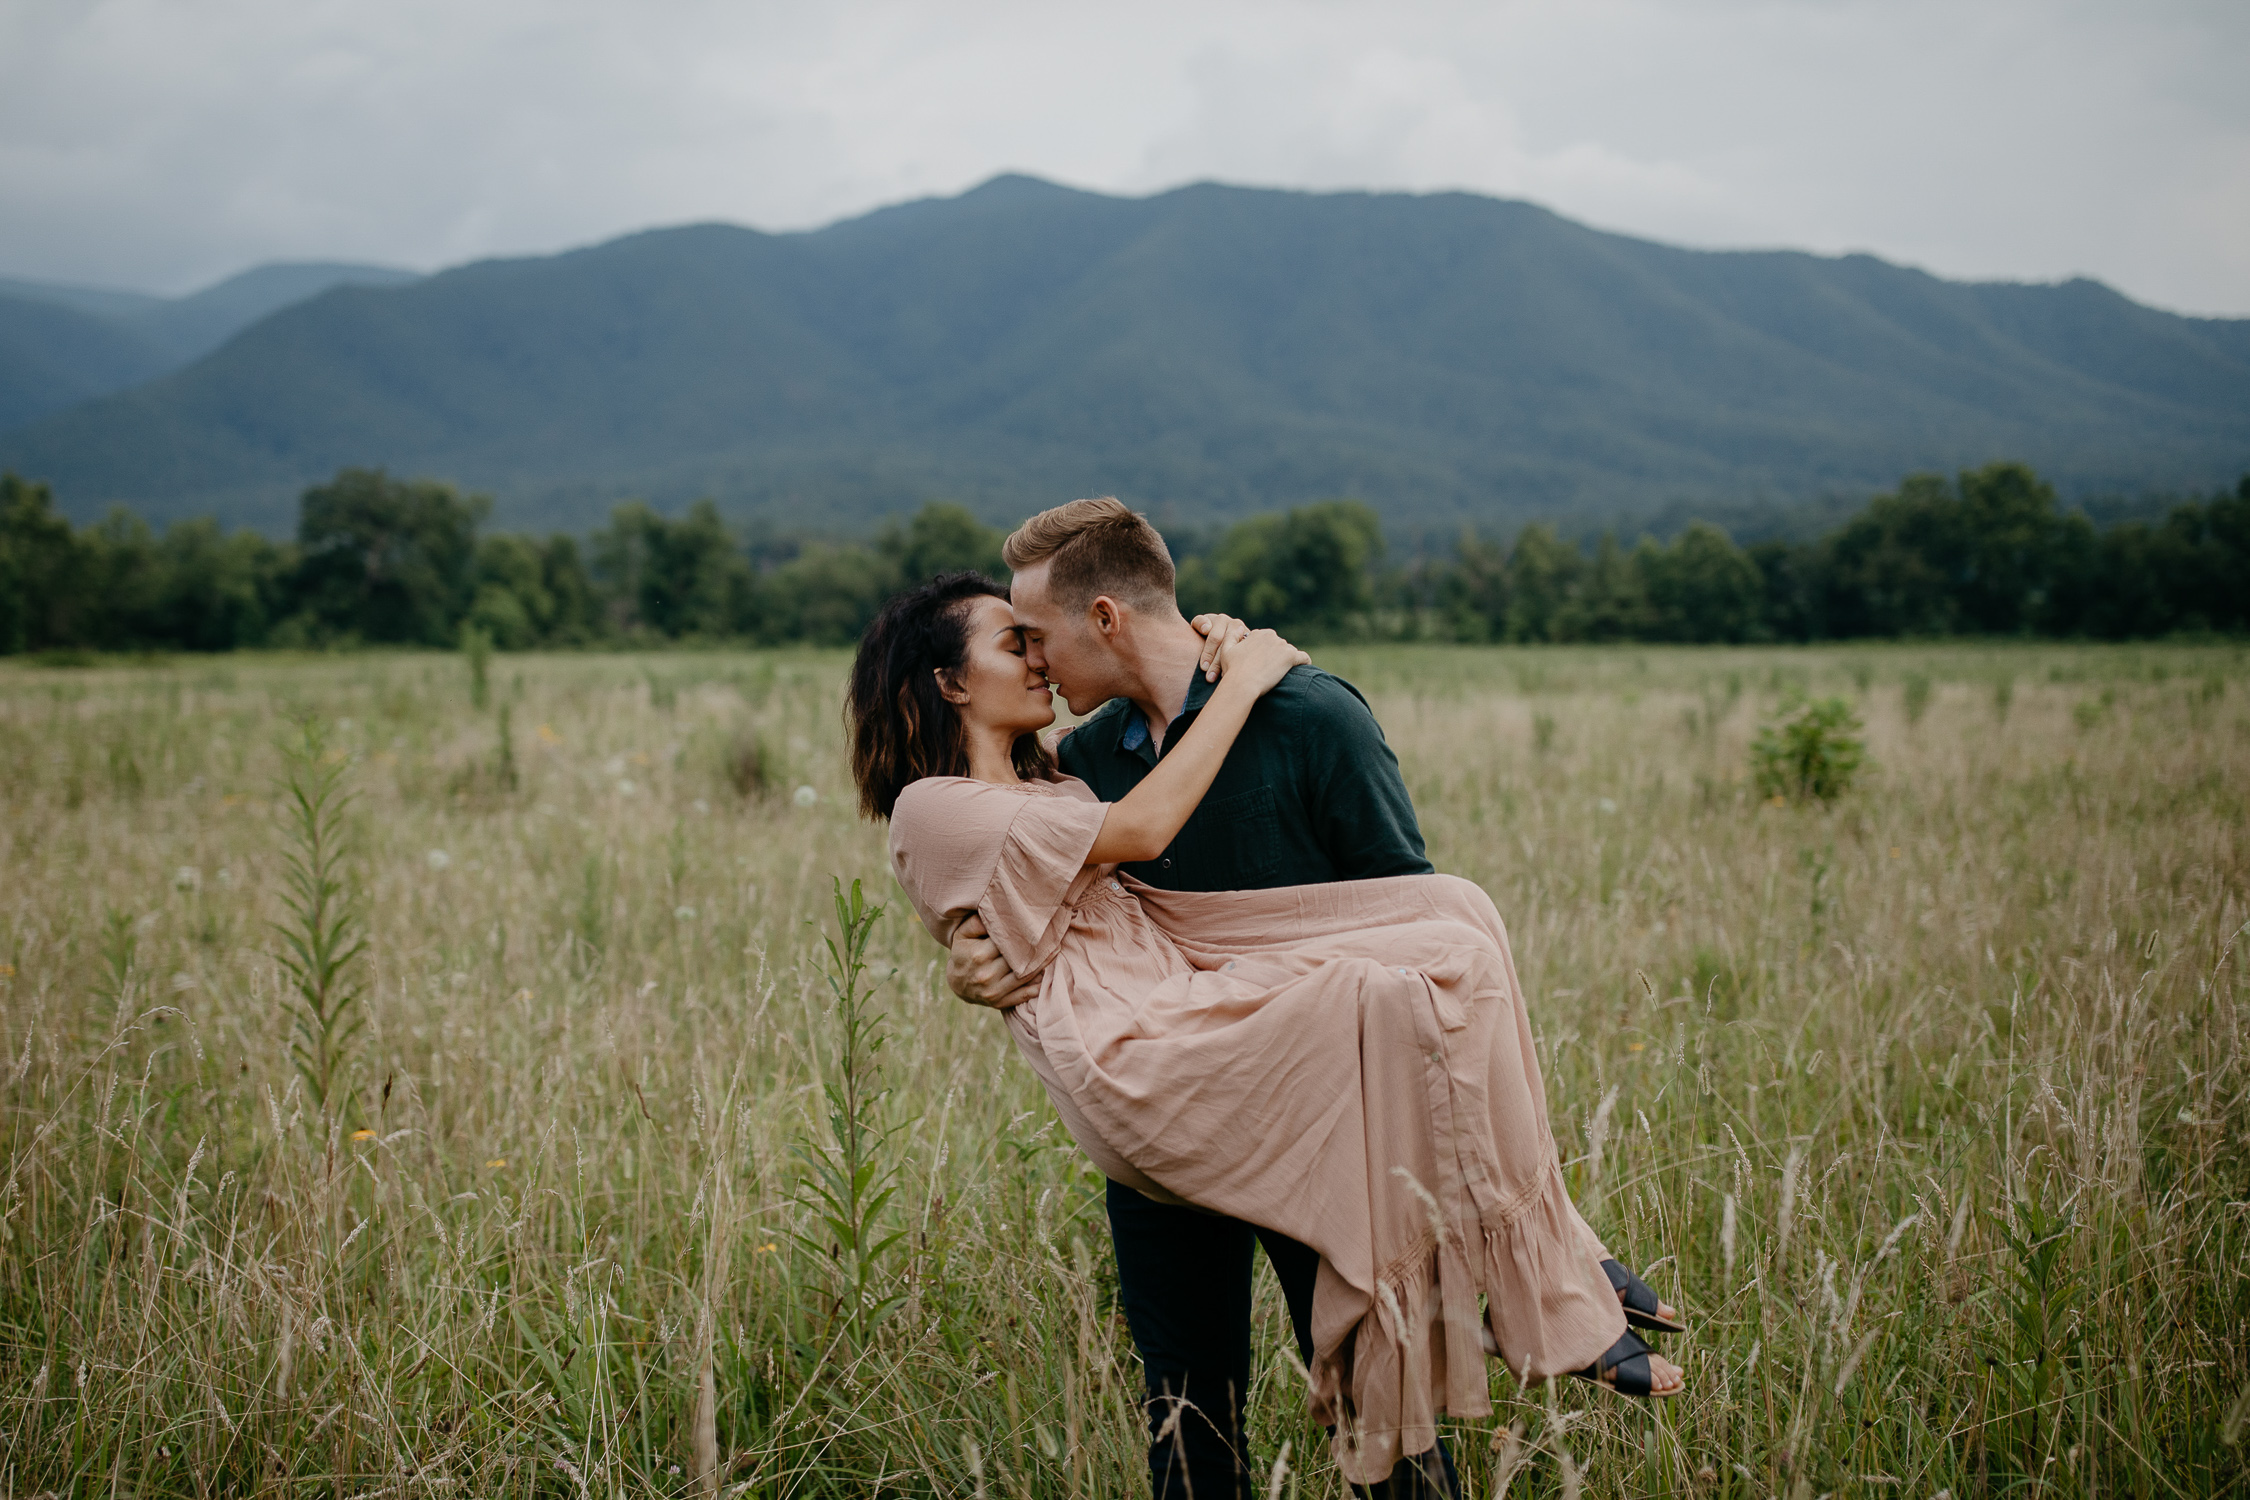 ariannamtorres and isaac engagement session at cades cove smoky mountains elopement-29.jpg